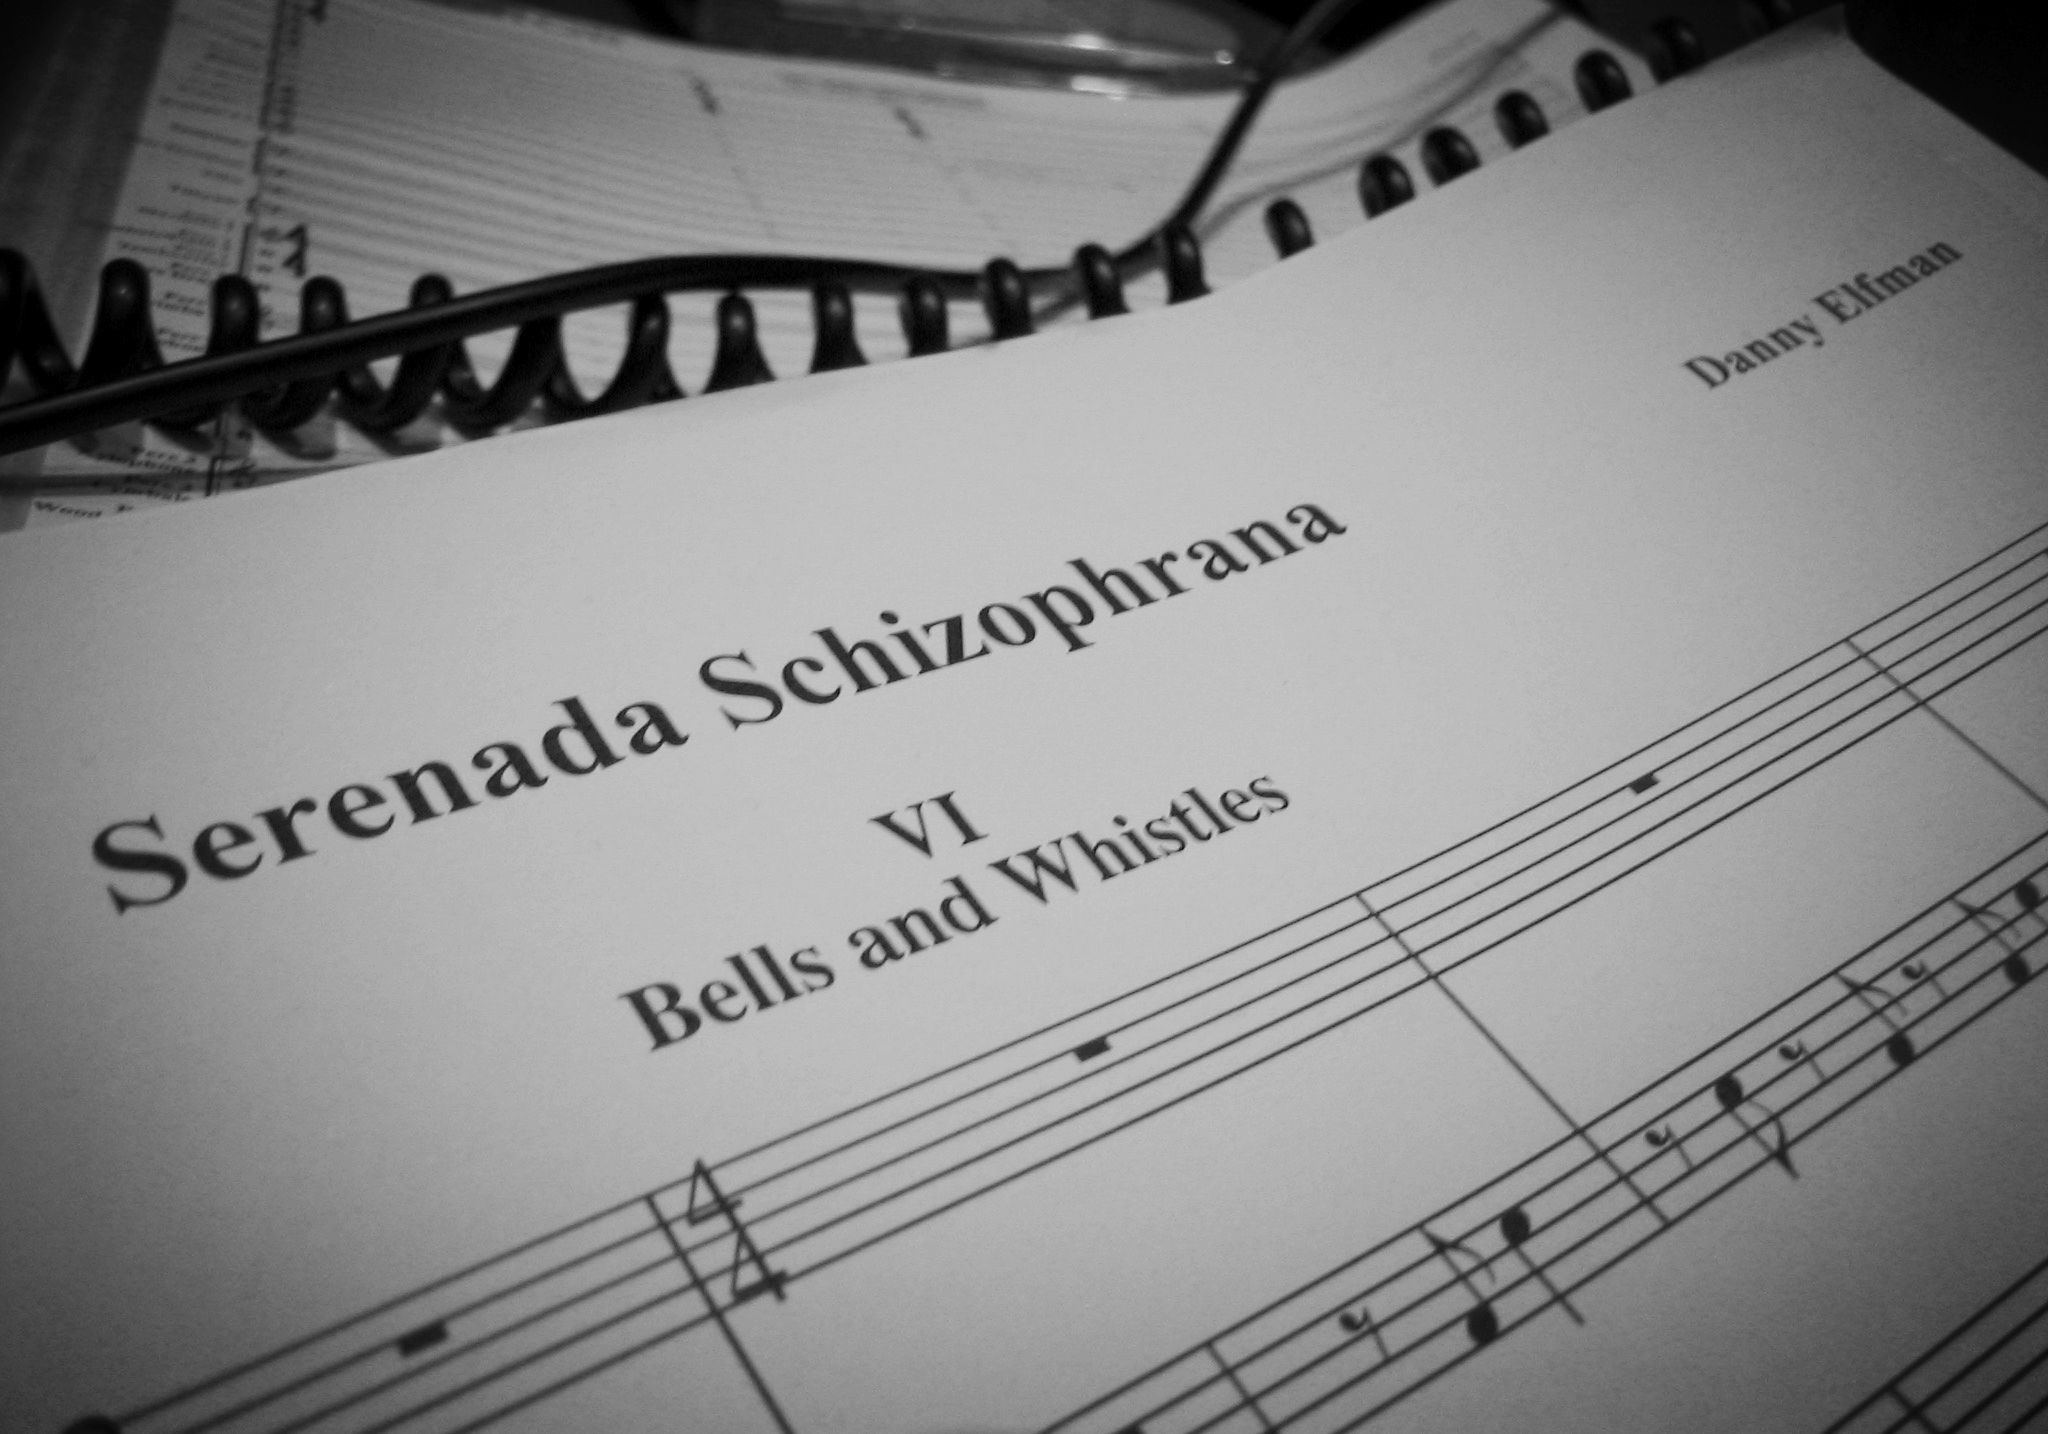 Serenada Schizophrana Score, Recording Session (2006)